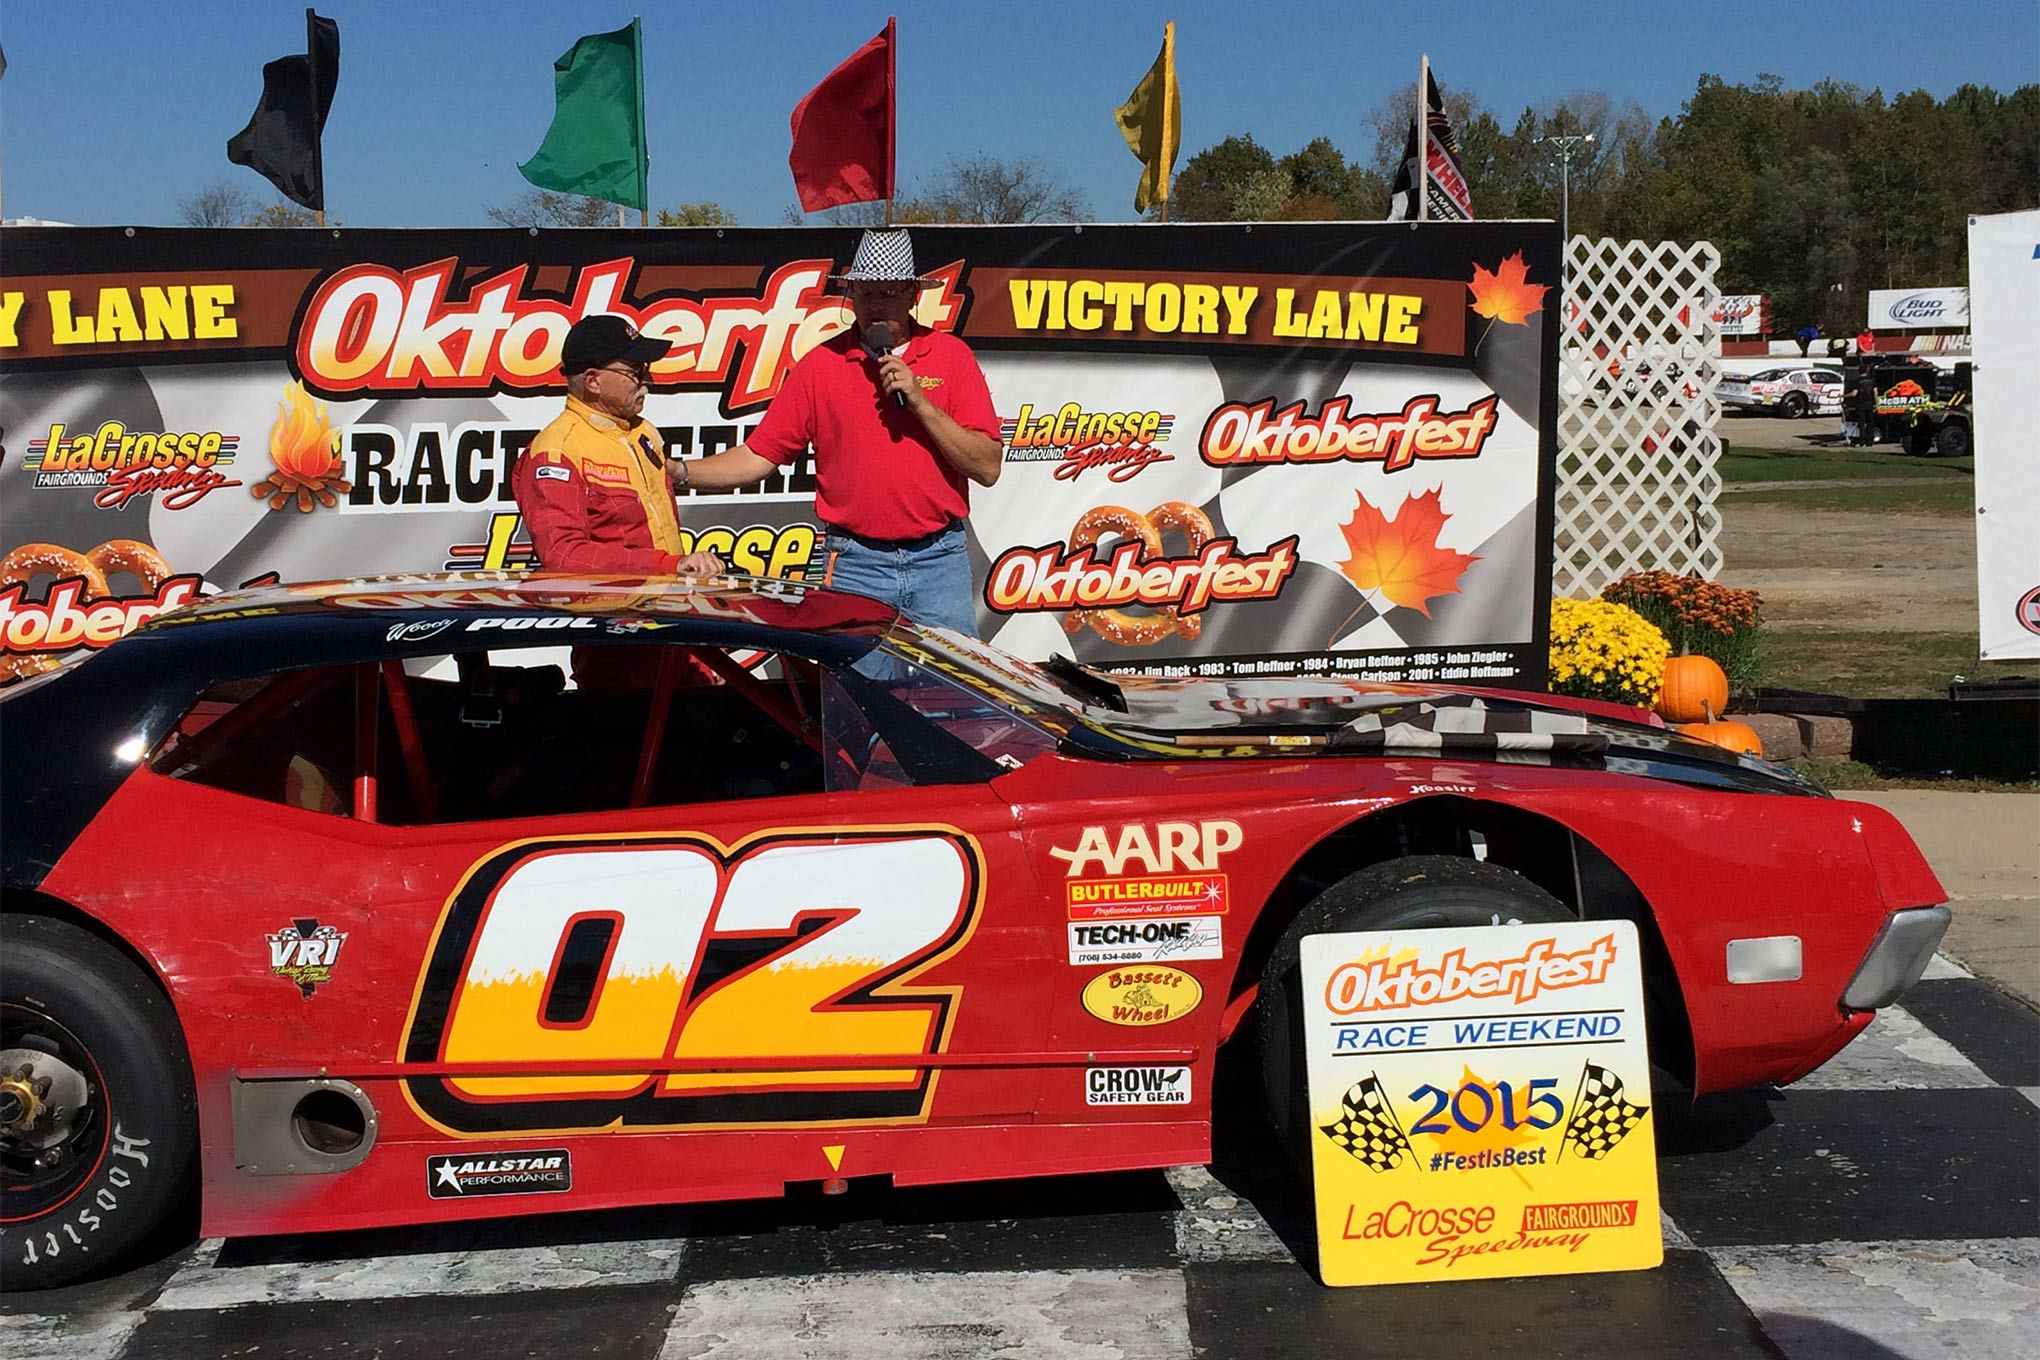 Long time racer Woody Pool picked up the win at Oktoberfest. That AARP sponsorship didn't slow him down one bit.